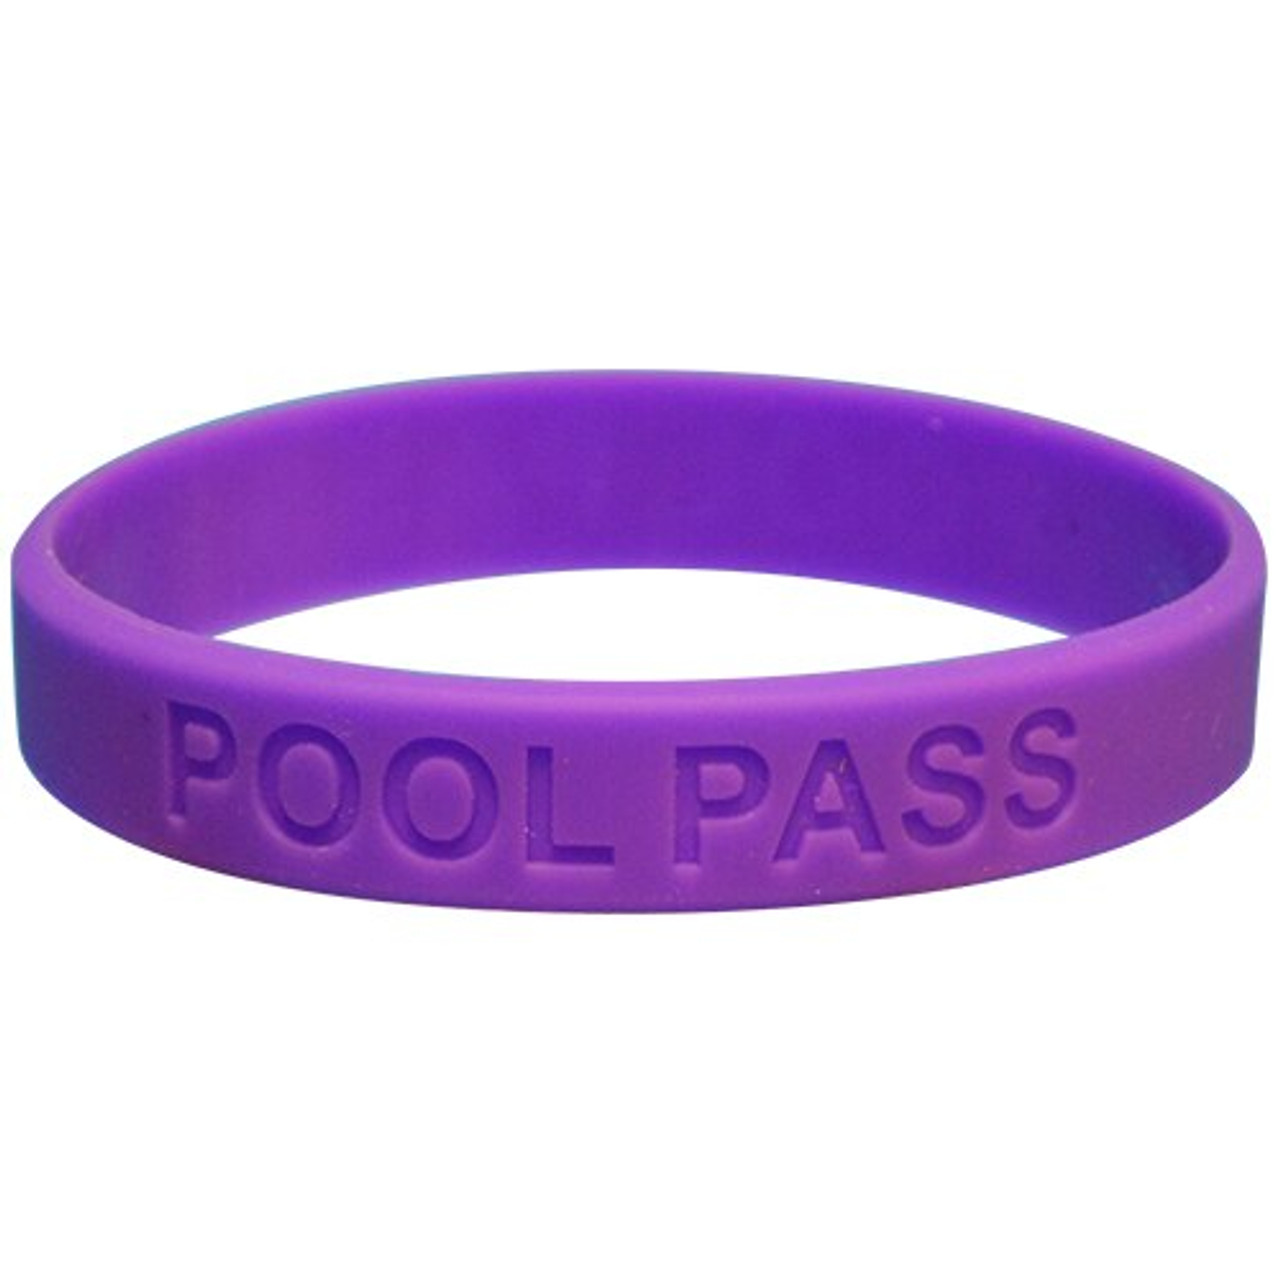 Adult Silicone Pool Pass (Purple)